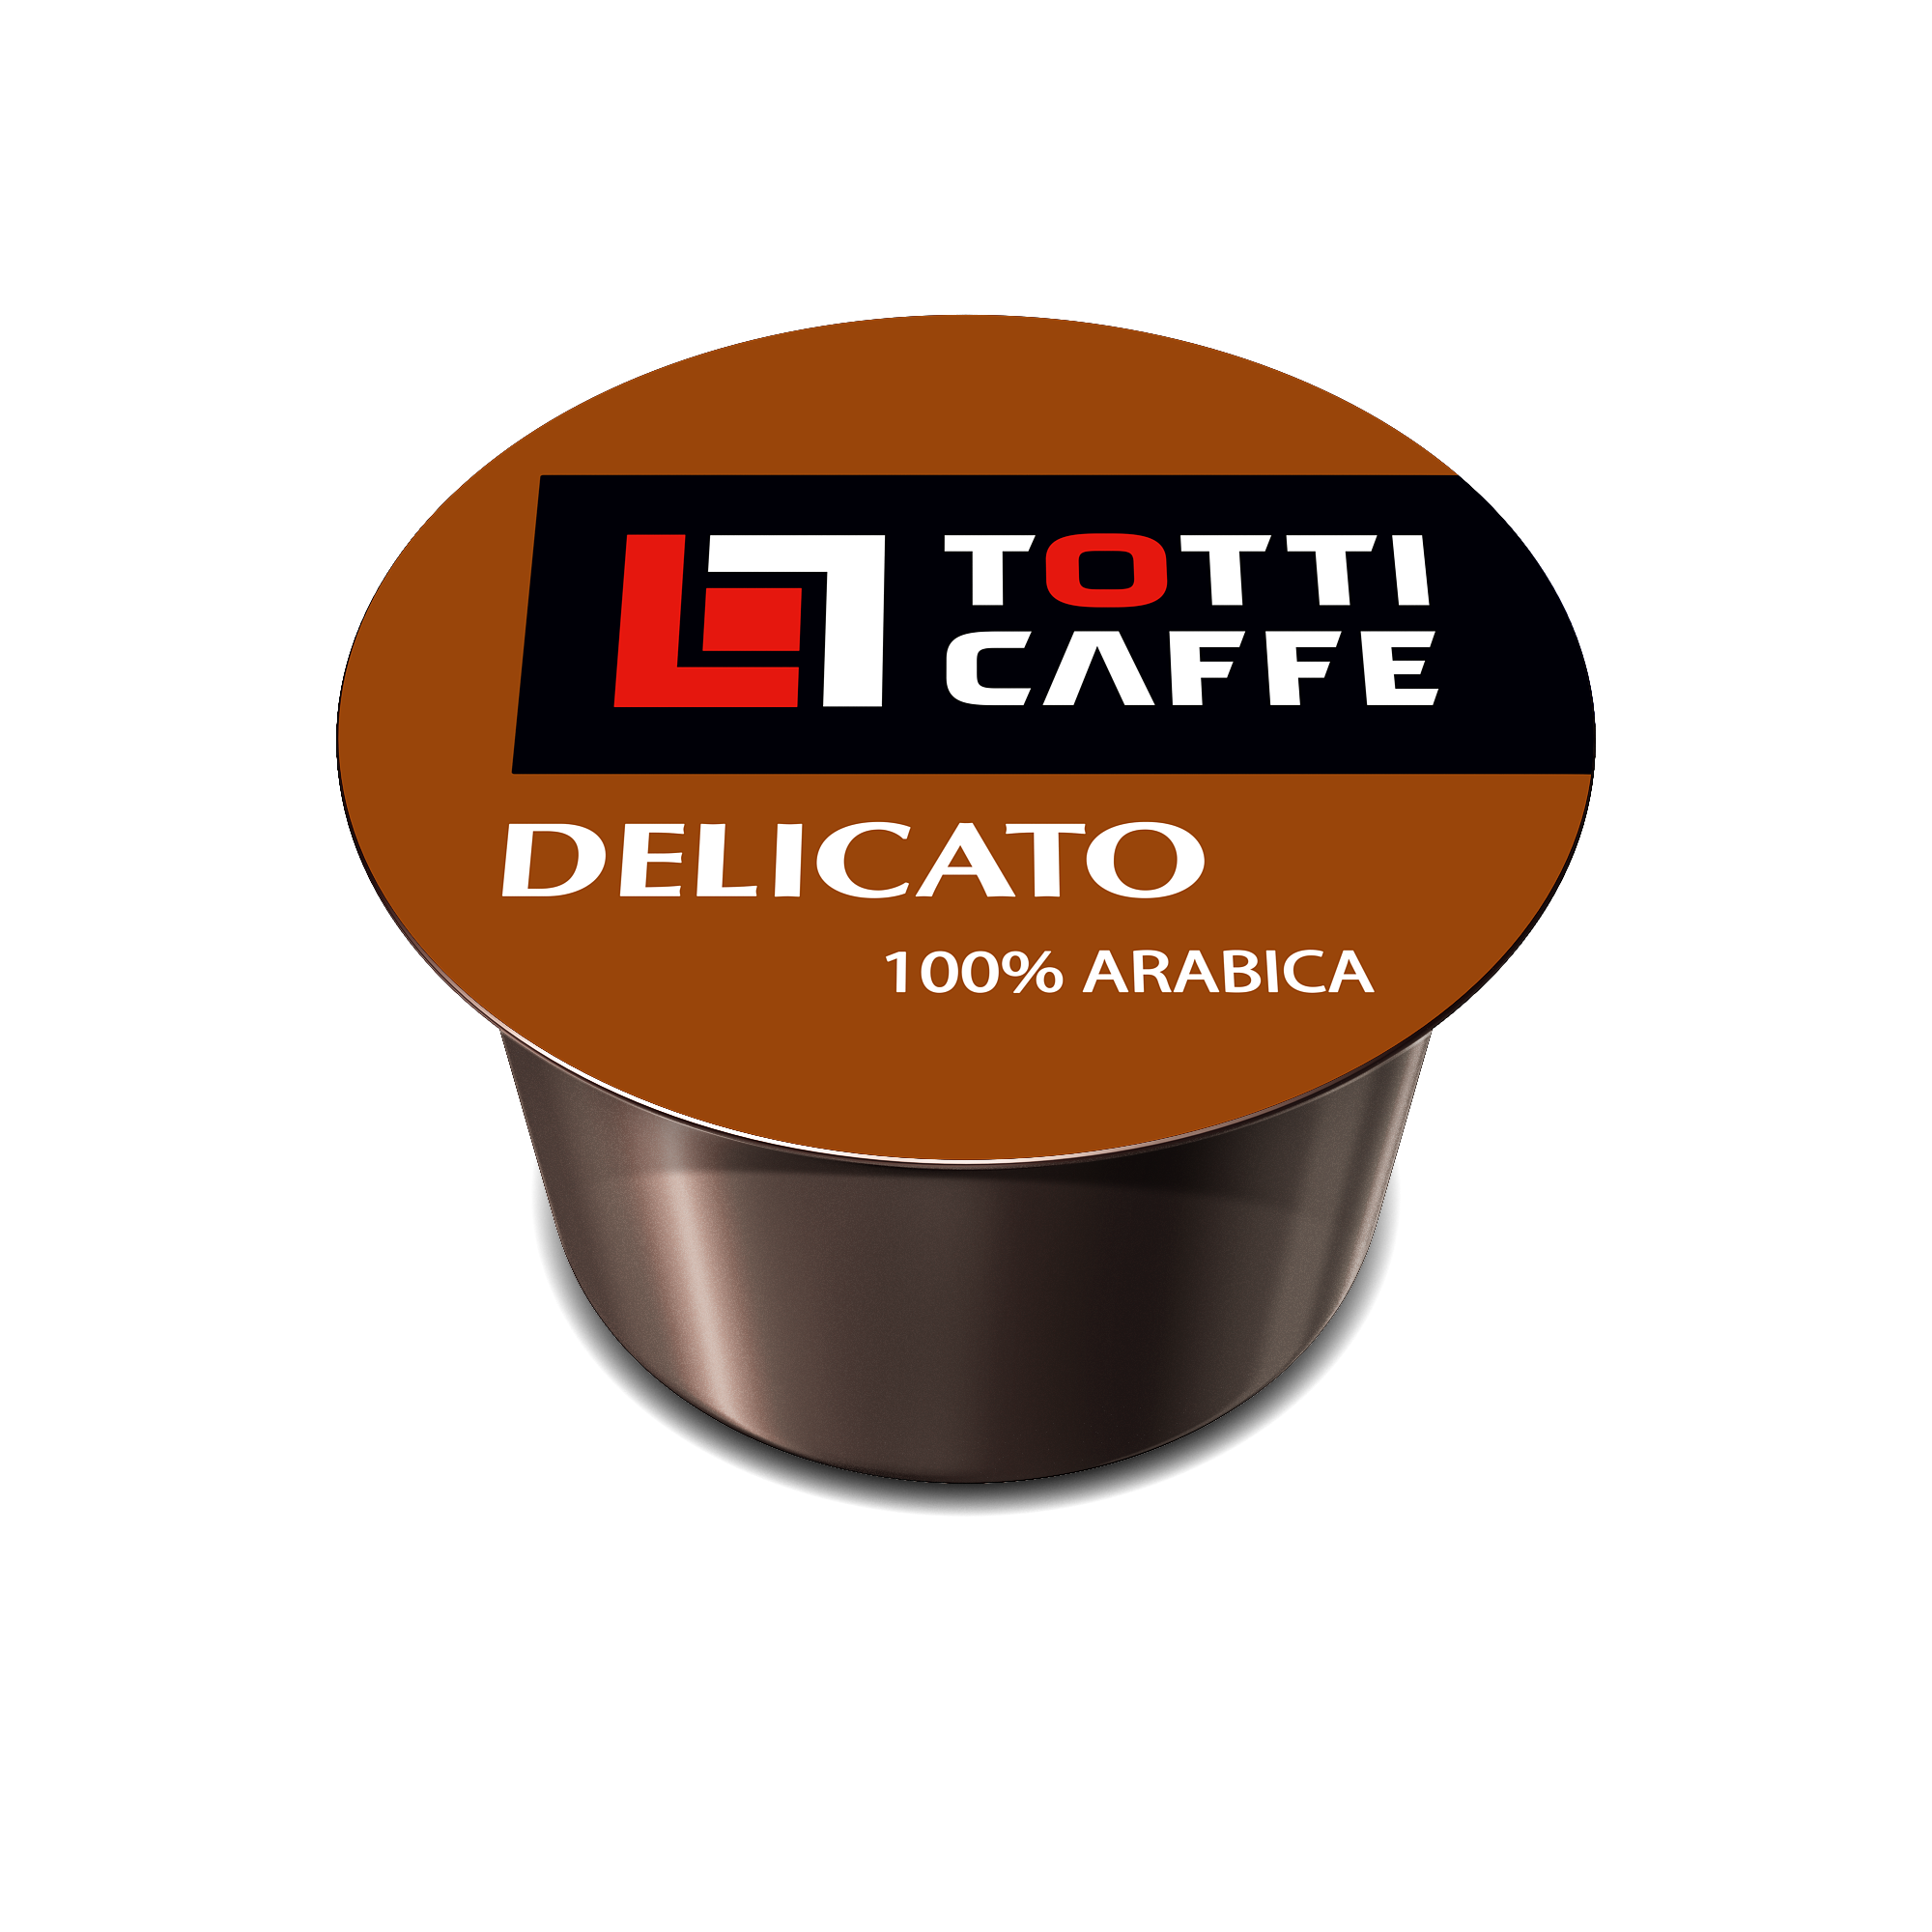 Капсулы TOTTI CAFFE Delicato